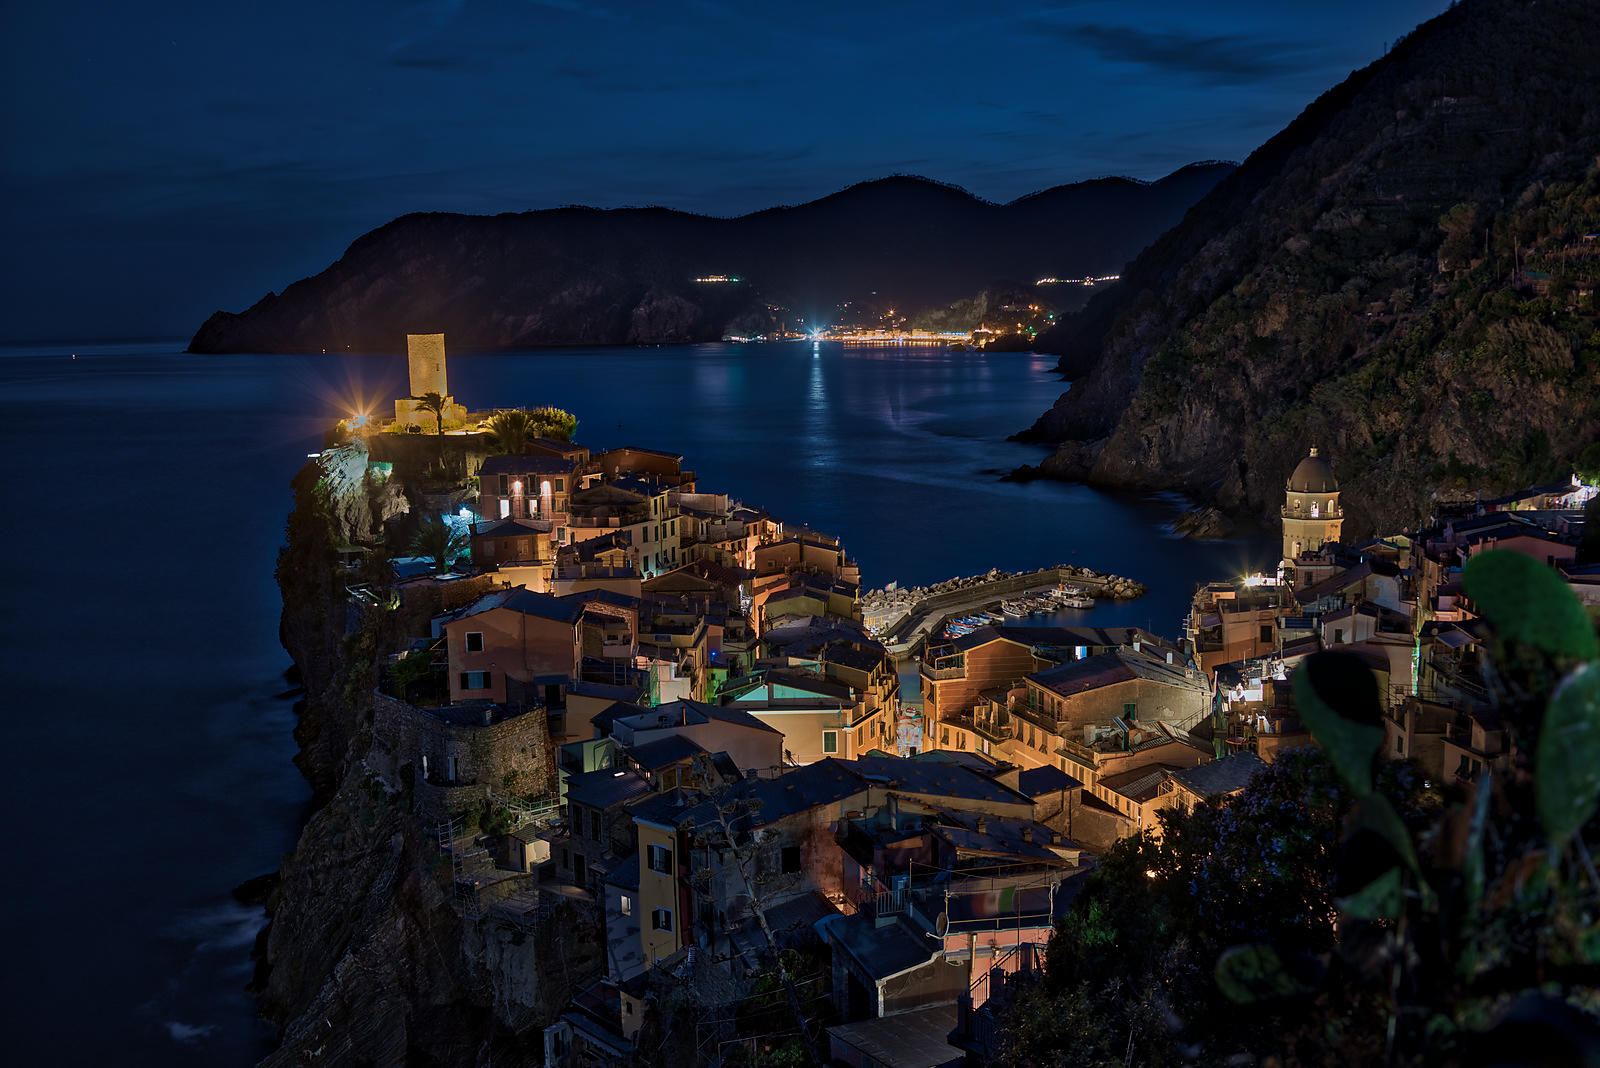 Town of Vernazza in the Cinque Terre region of Italy